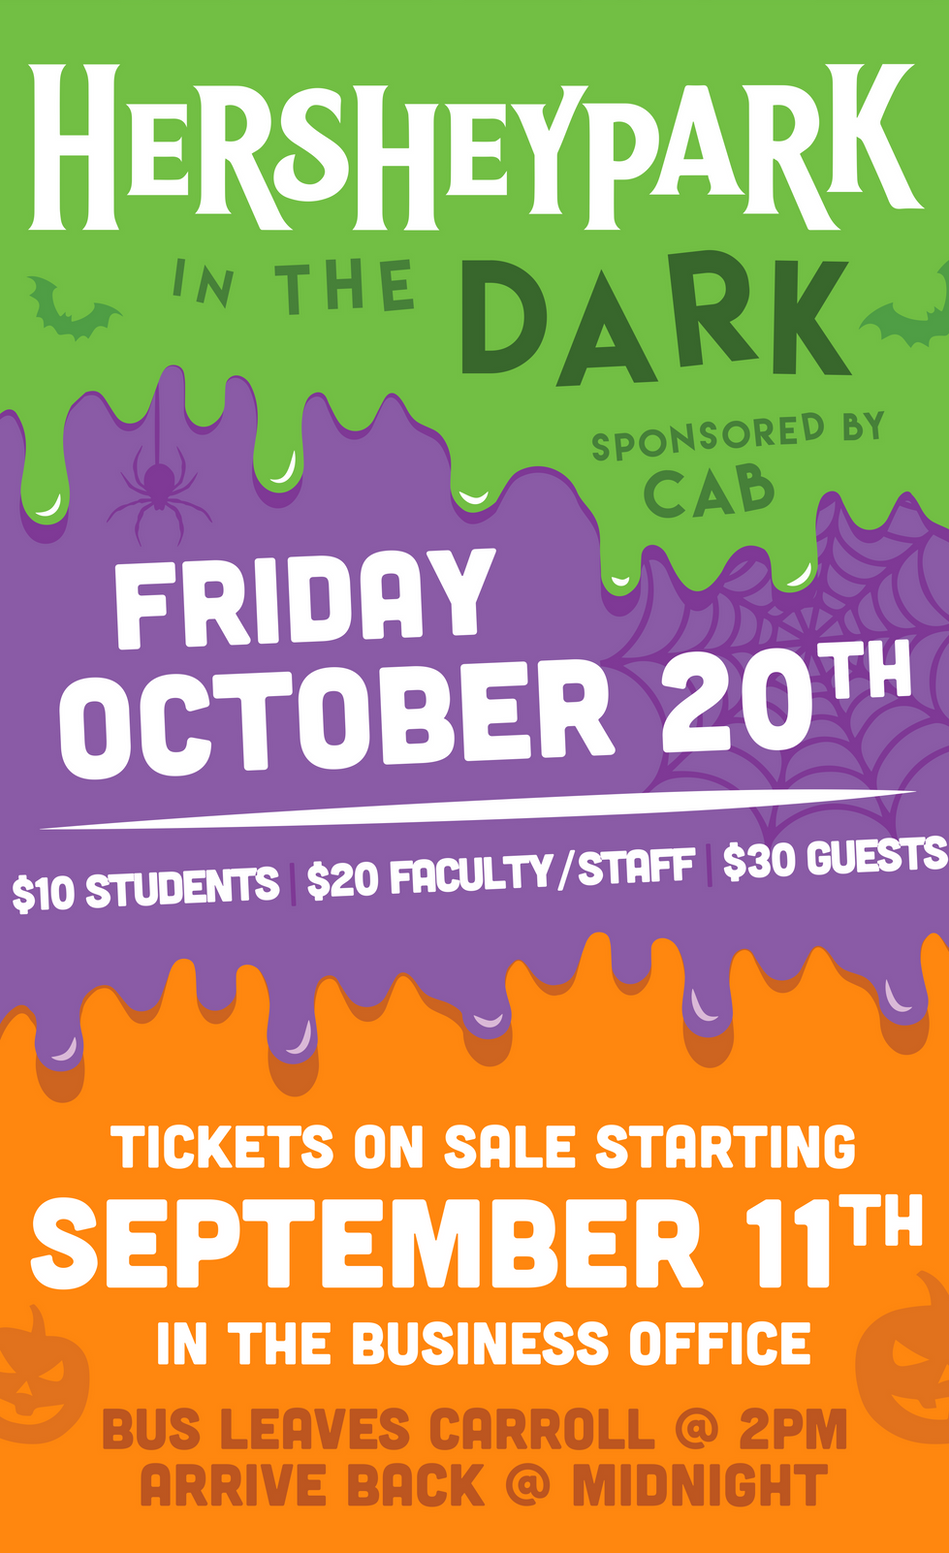 Hershey Park in the Dark Student Life Banner